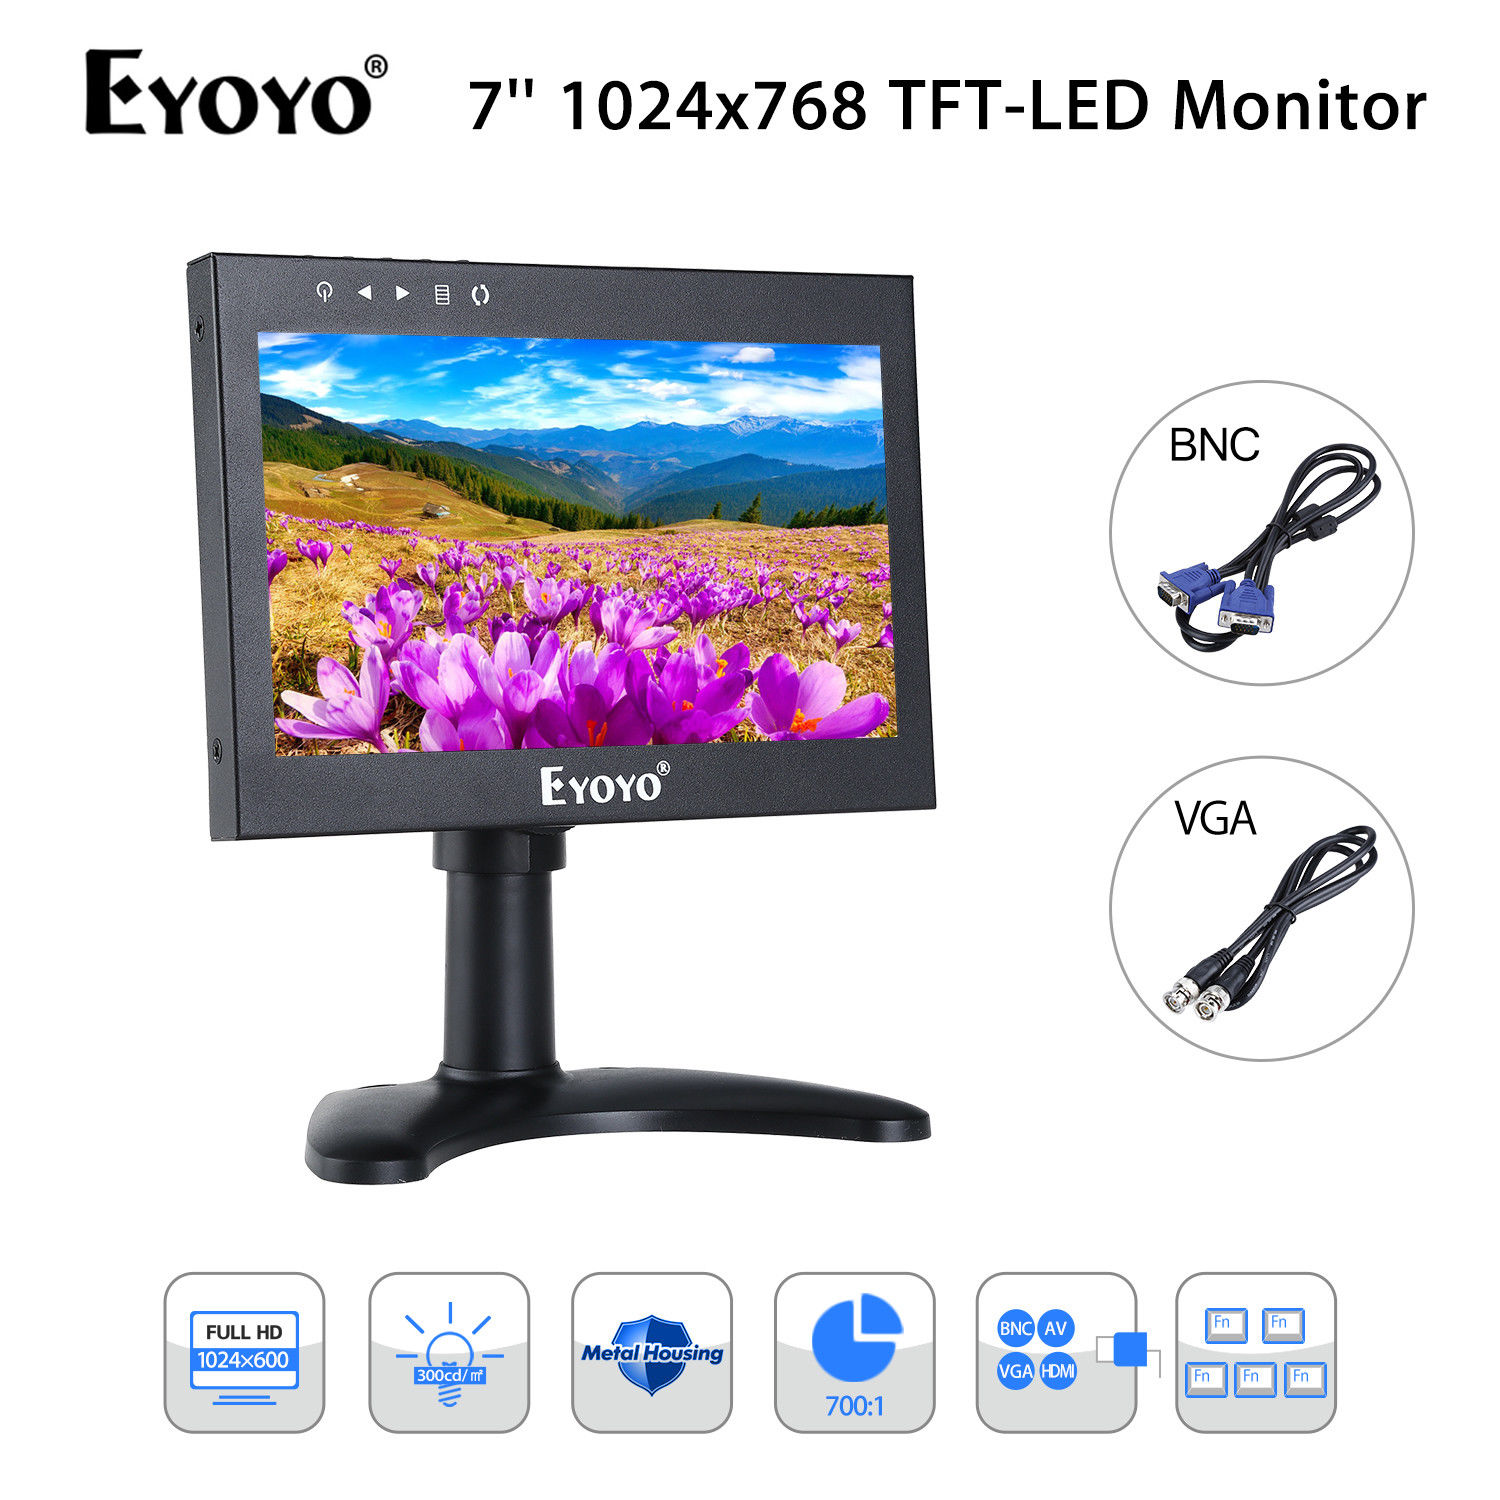 EYOYO 7'' FHD LCD Display 1024x600 300cd/m2 Video Audio VGA BNC HDMI Monitor Metal Housing Built-in 5000MHA Rechargeable Battery aputure digital 7inch lcd field video monitor v screen vs 1 finehd field monitor accepts hdmi av for dslr